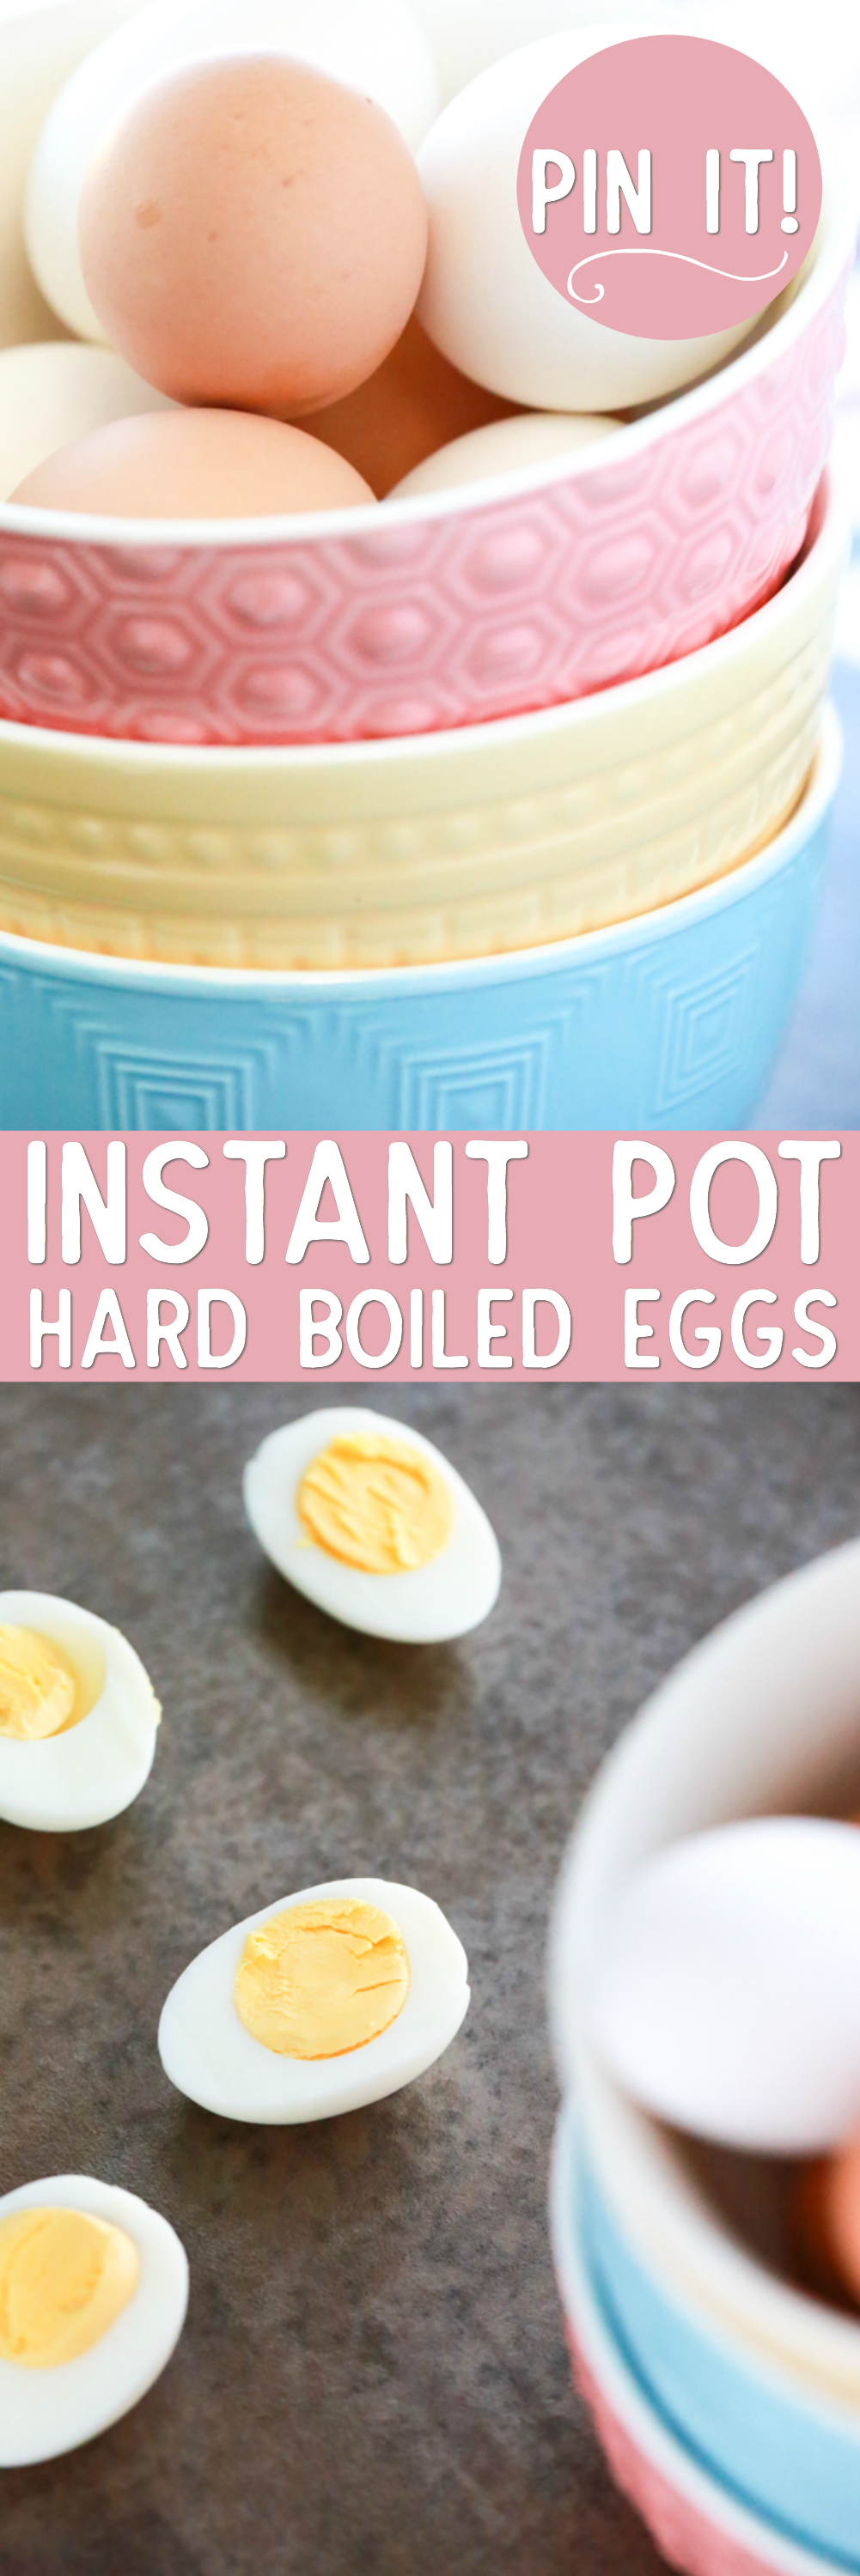 Instant Pot Hard Boiled Eggs are amazing each and every time I make them! They're easy to peel and that rich yellow yolk gets me every time, y'all.